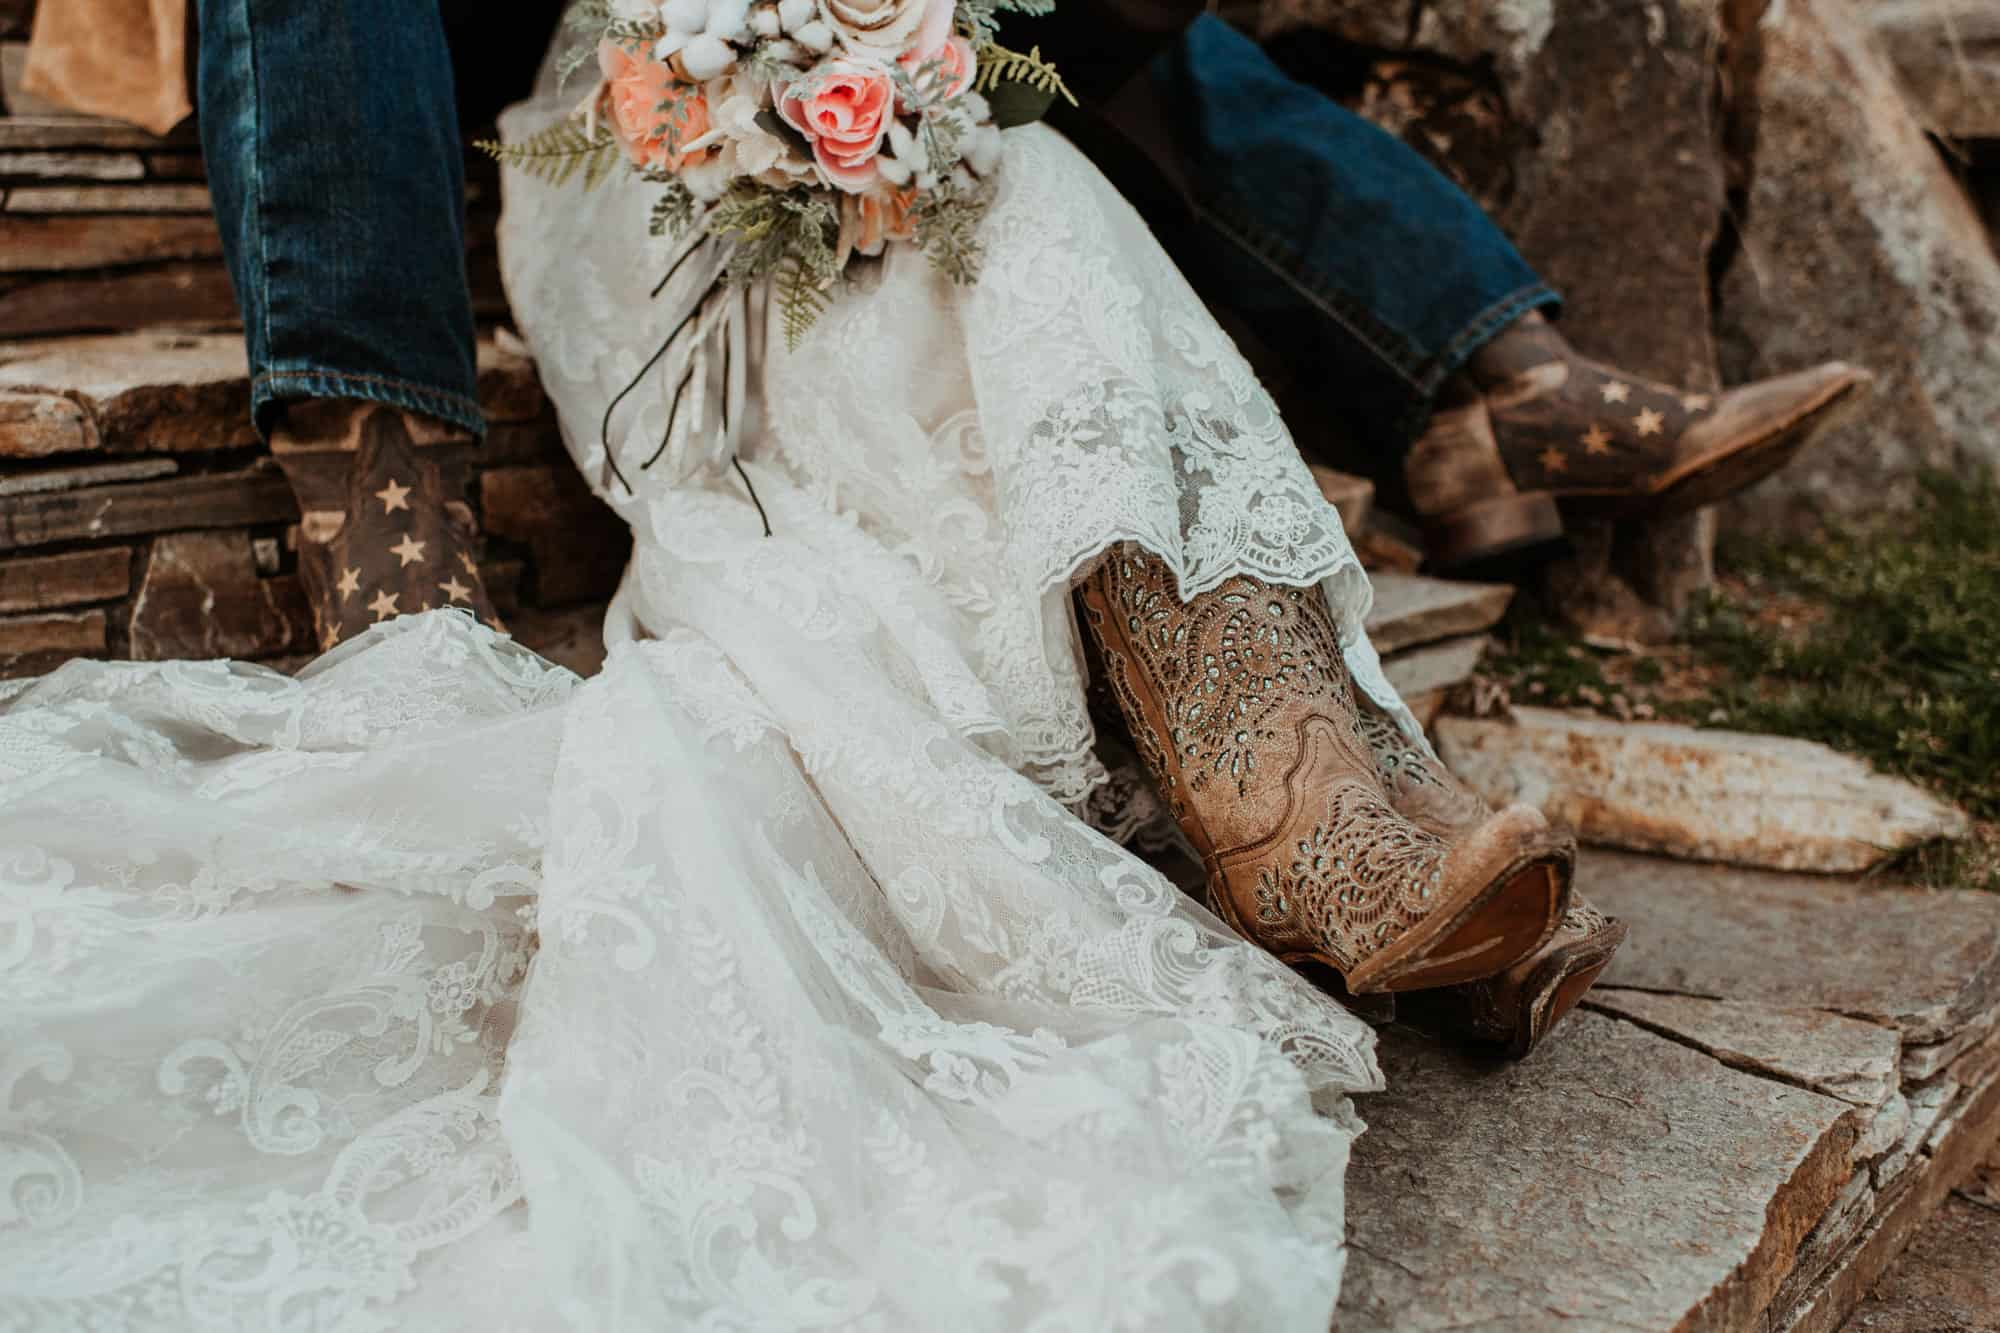 Corral wedding boots on a bride in a wedding dress holding flowers